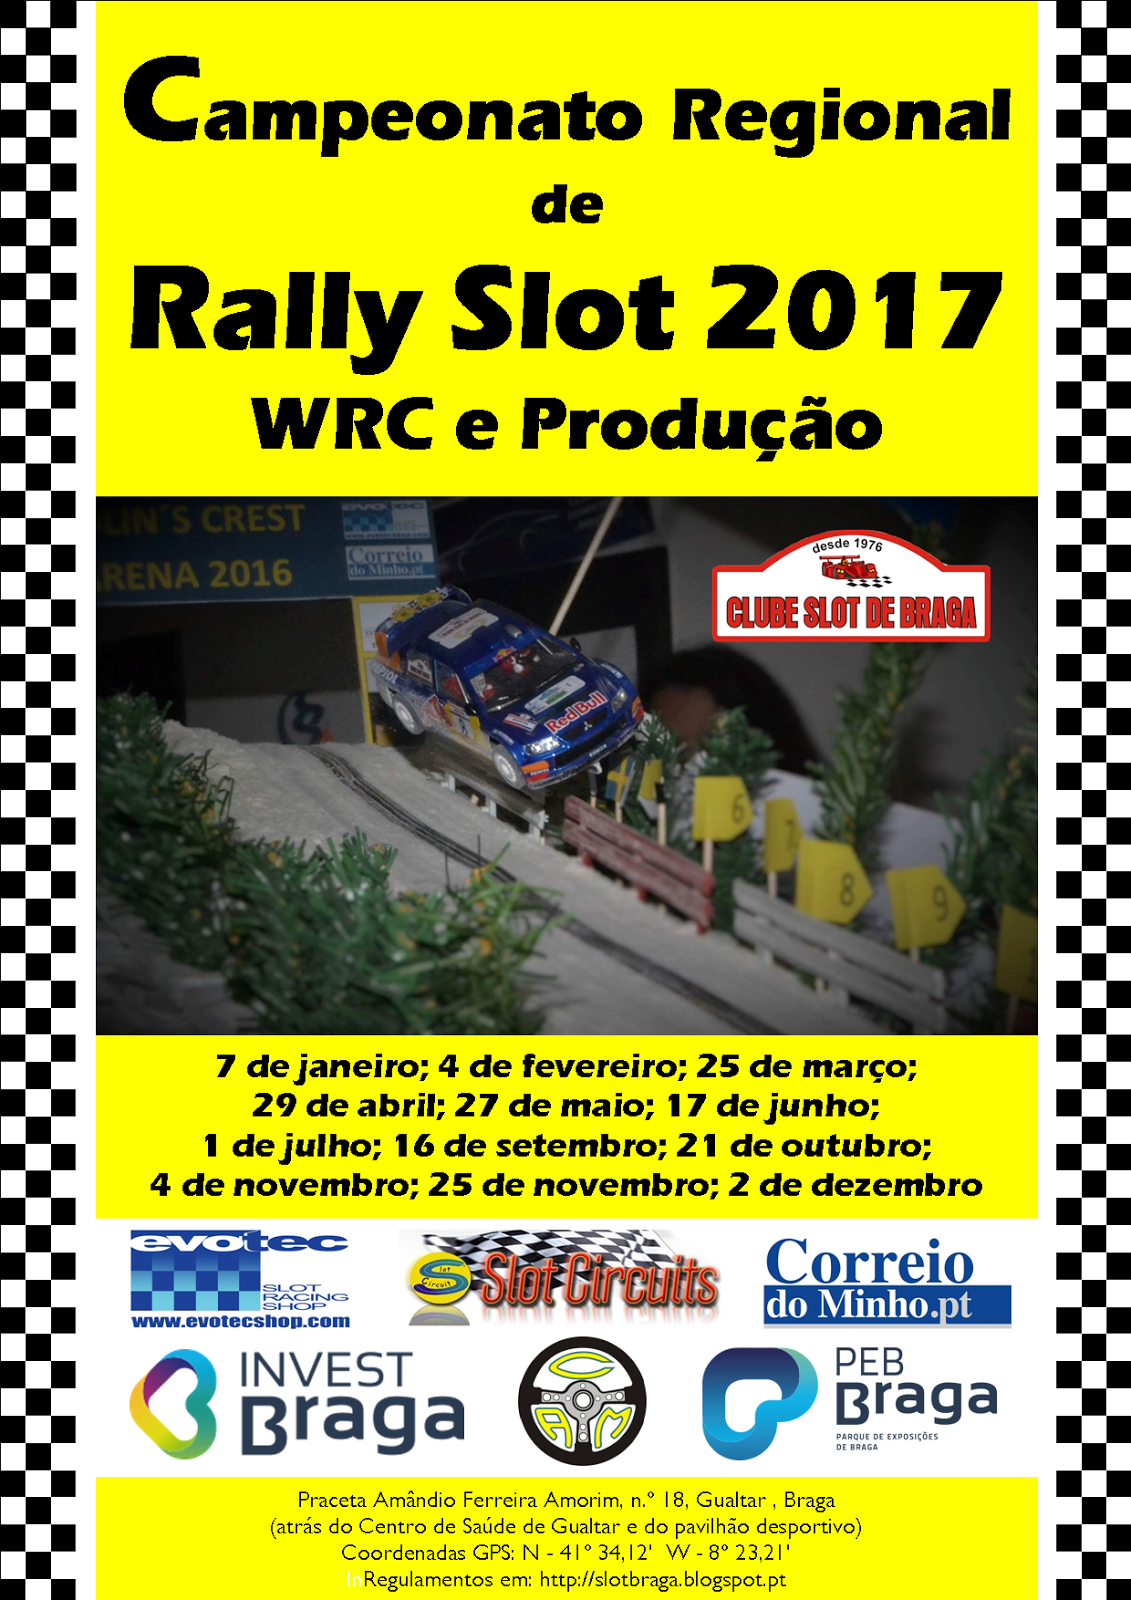 10.ª Prova do Campeonato Regional de Rally Slot 2017